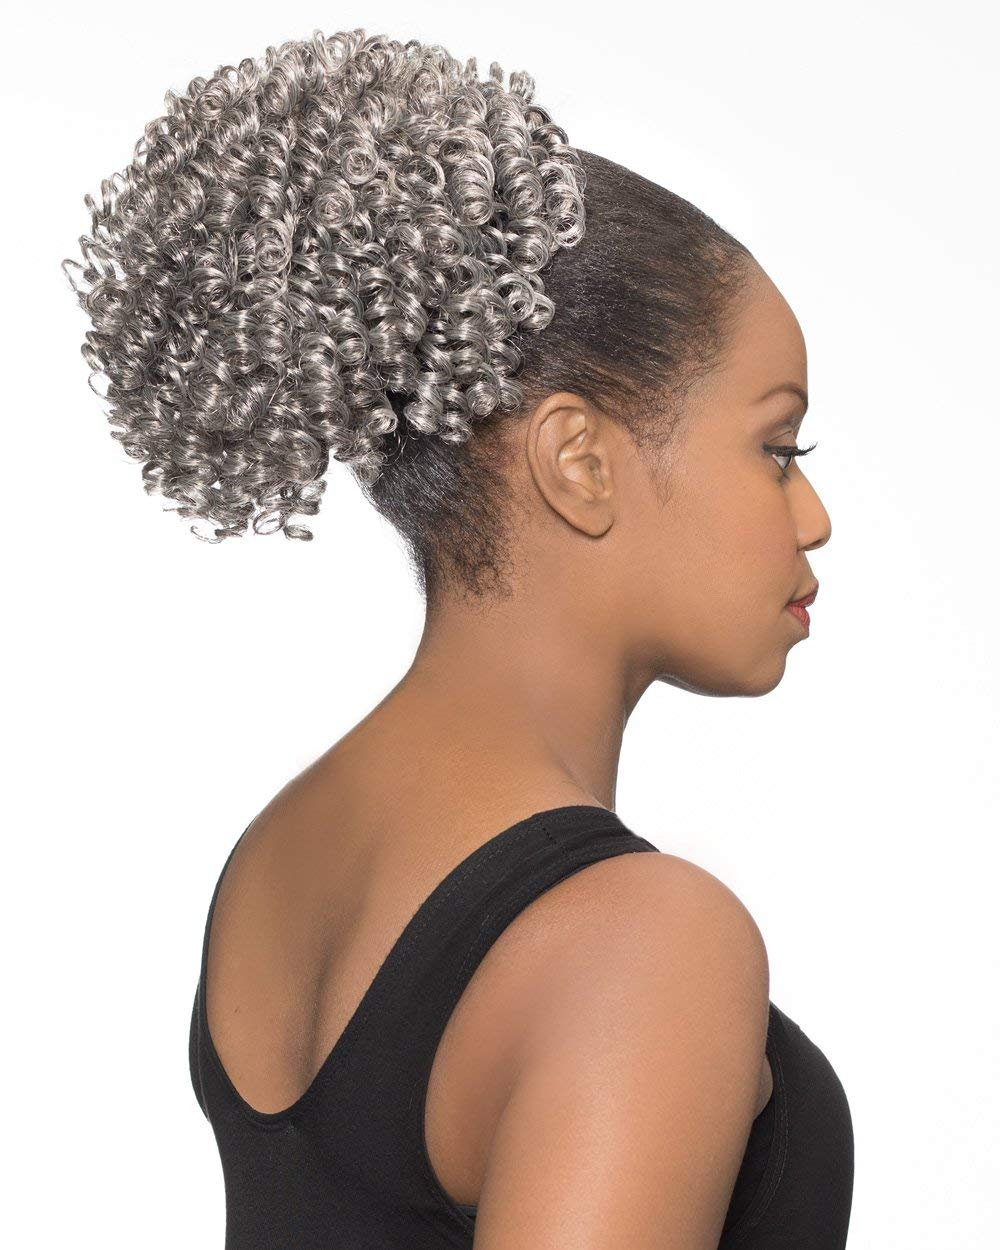 DS008 Ponytail Color 51 Light Year-end gift Jacksonville Mall Gray Foxy Spir Silver Wigs - Short